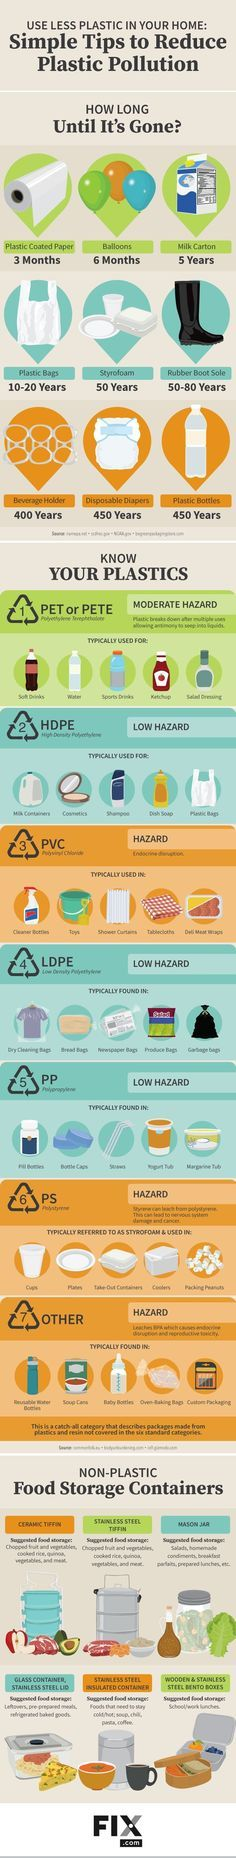 Learn more about superfluous plastic and how it's impacting your health and the environment. With some small changes you can reduce…